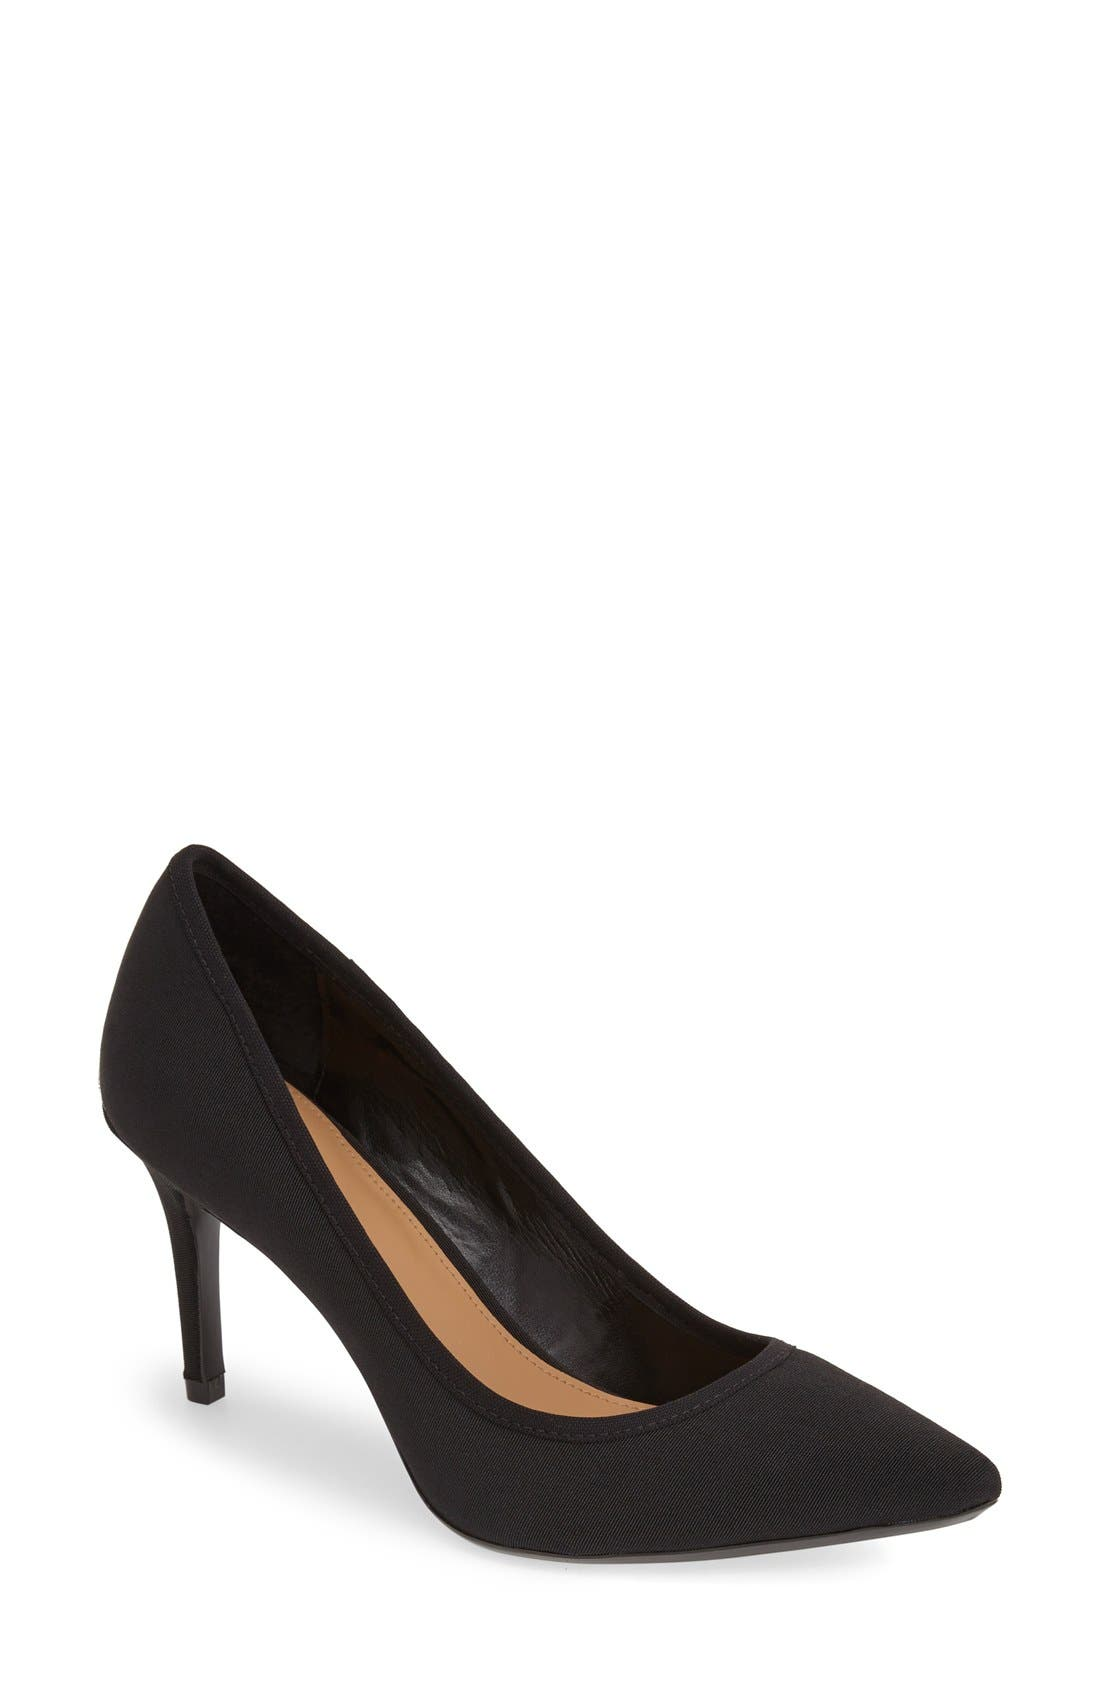 'Gayle' Pointy Toe Pump,                         Main,                         color, BLACK STRETCH